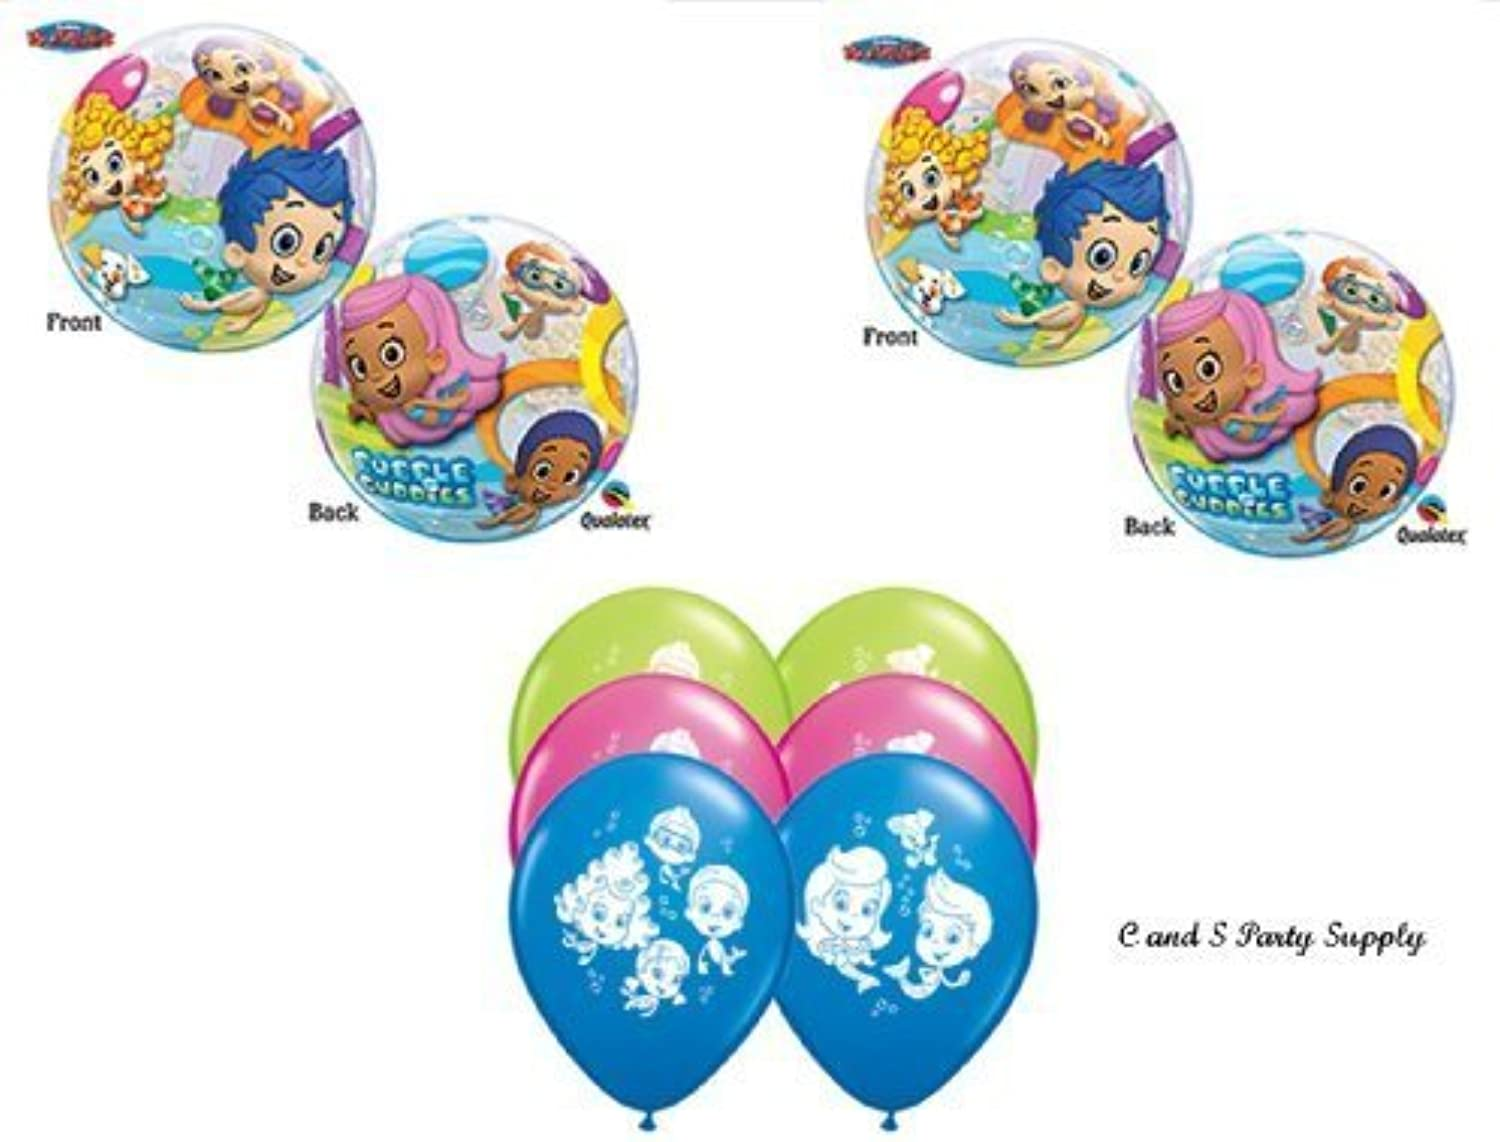 Bubble Guppies 8 PIECE Birthday Party Balloons Decorations Supplies NEW  by Qualatex by Qualatex